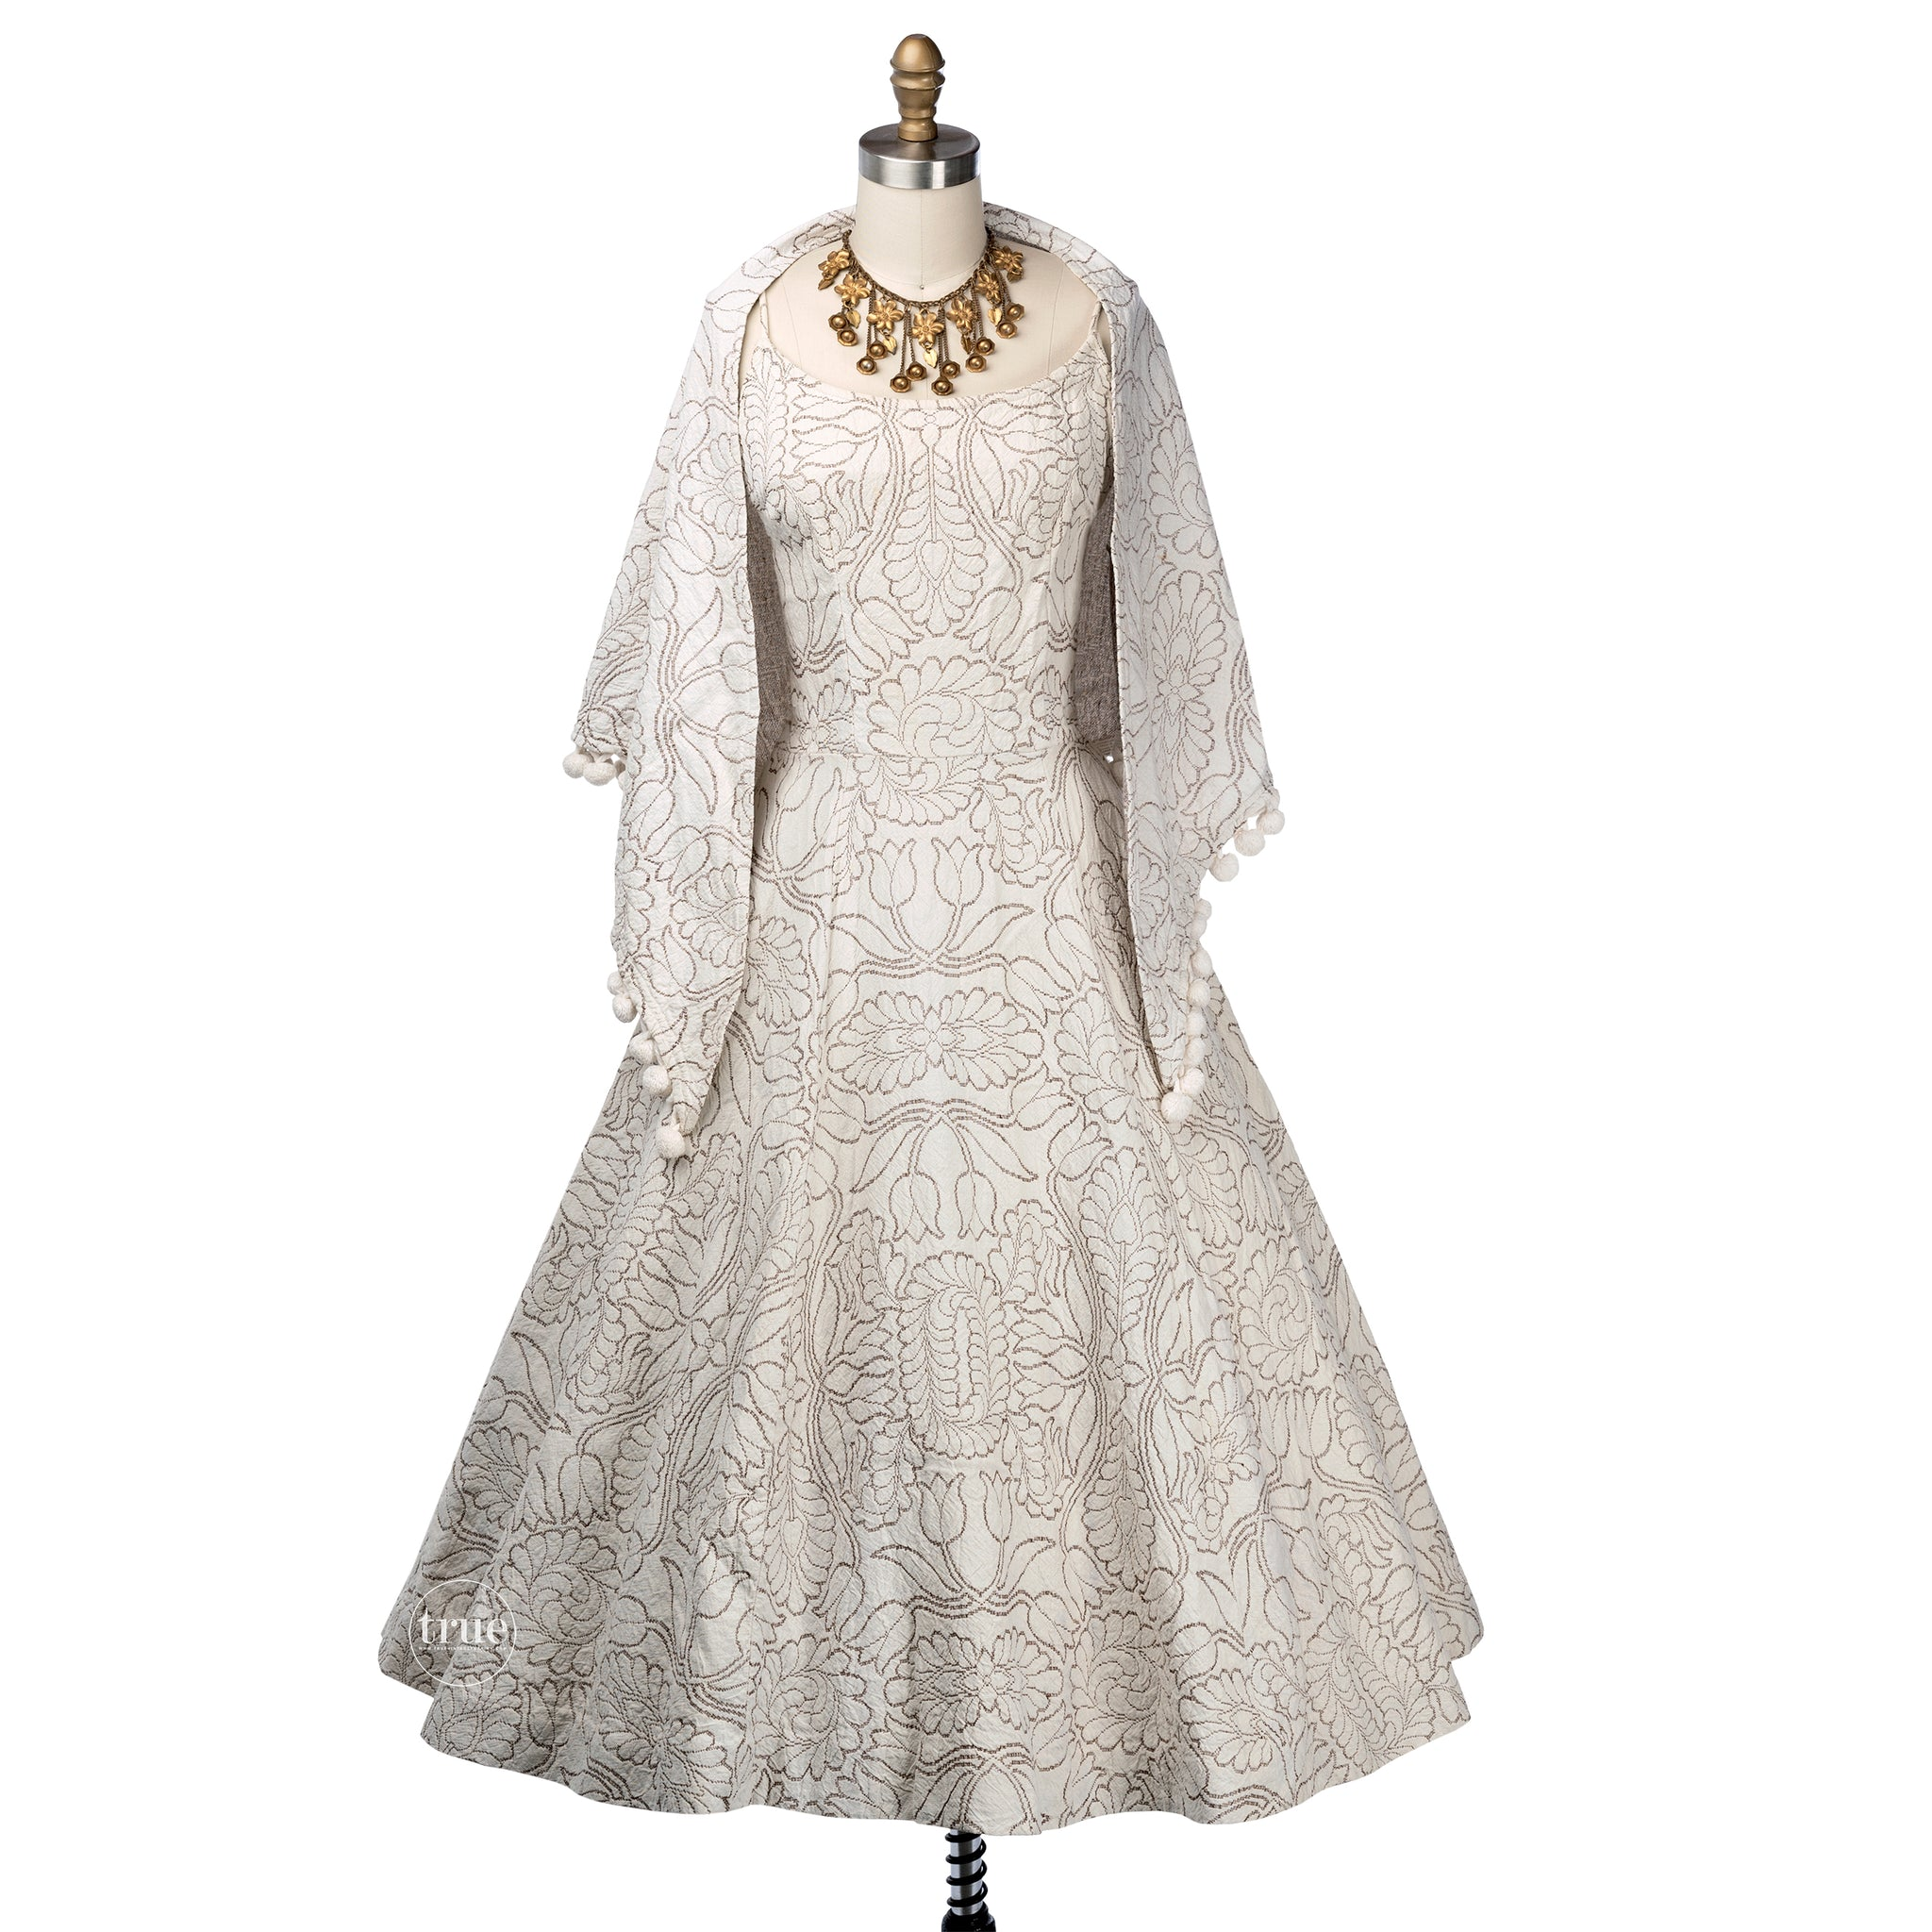 vintage 1950's dress & shawl ...cotton brocade full skirt dress and shawl